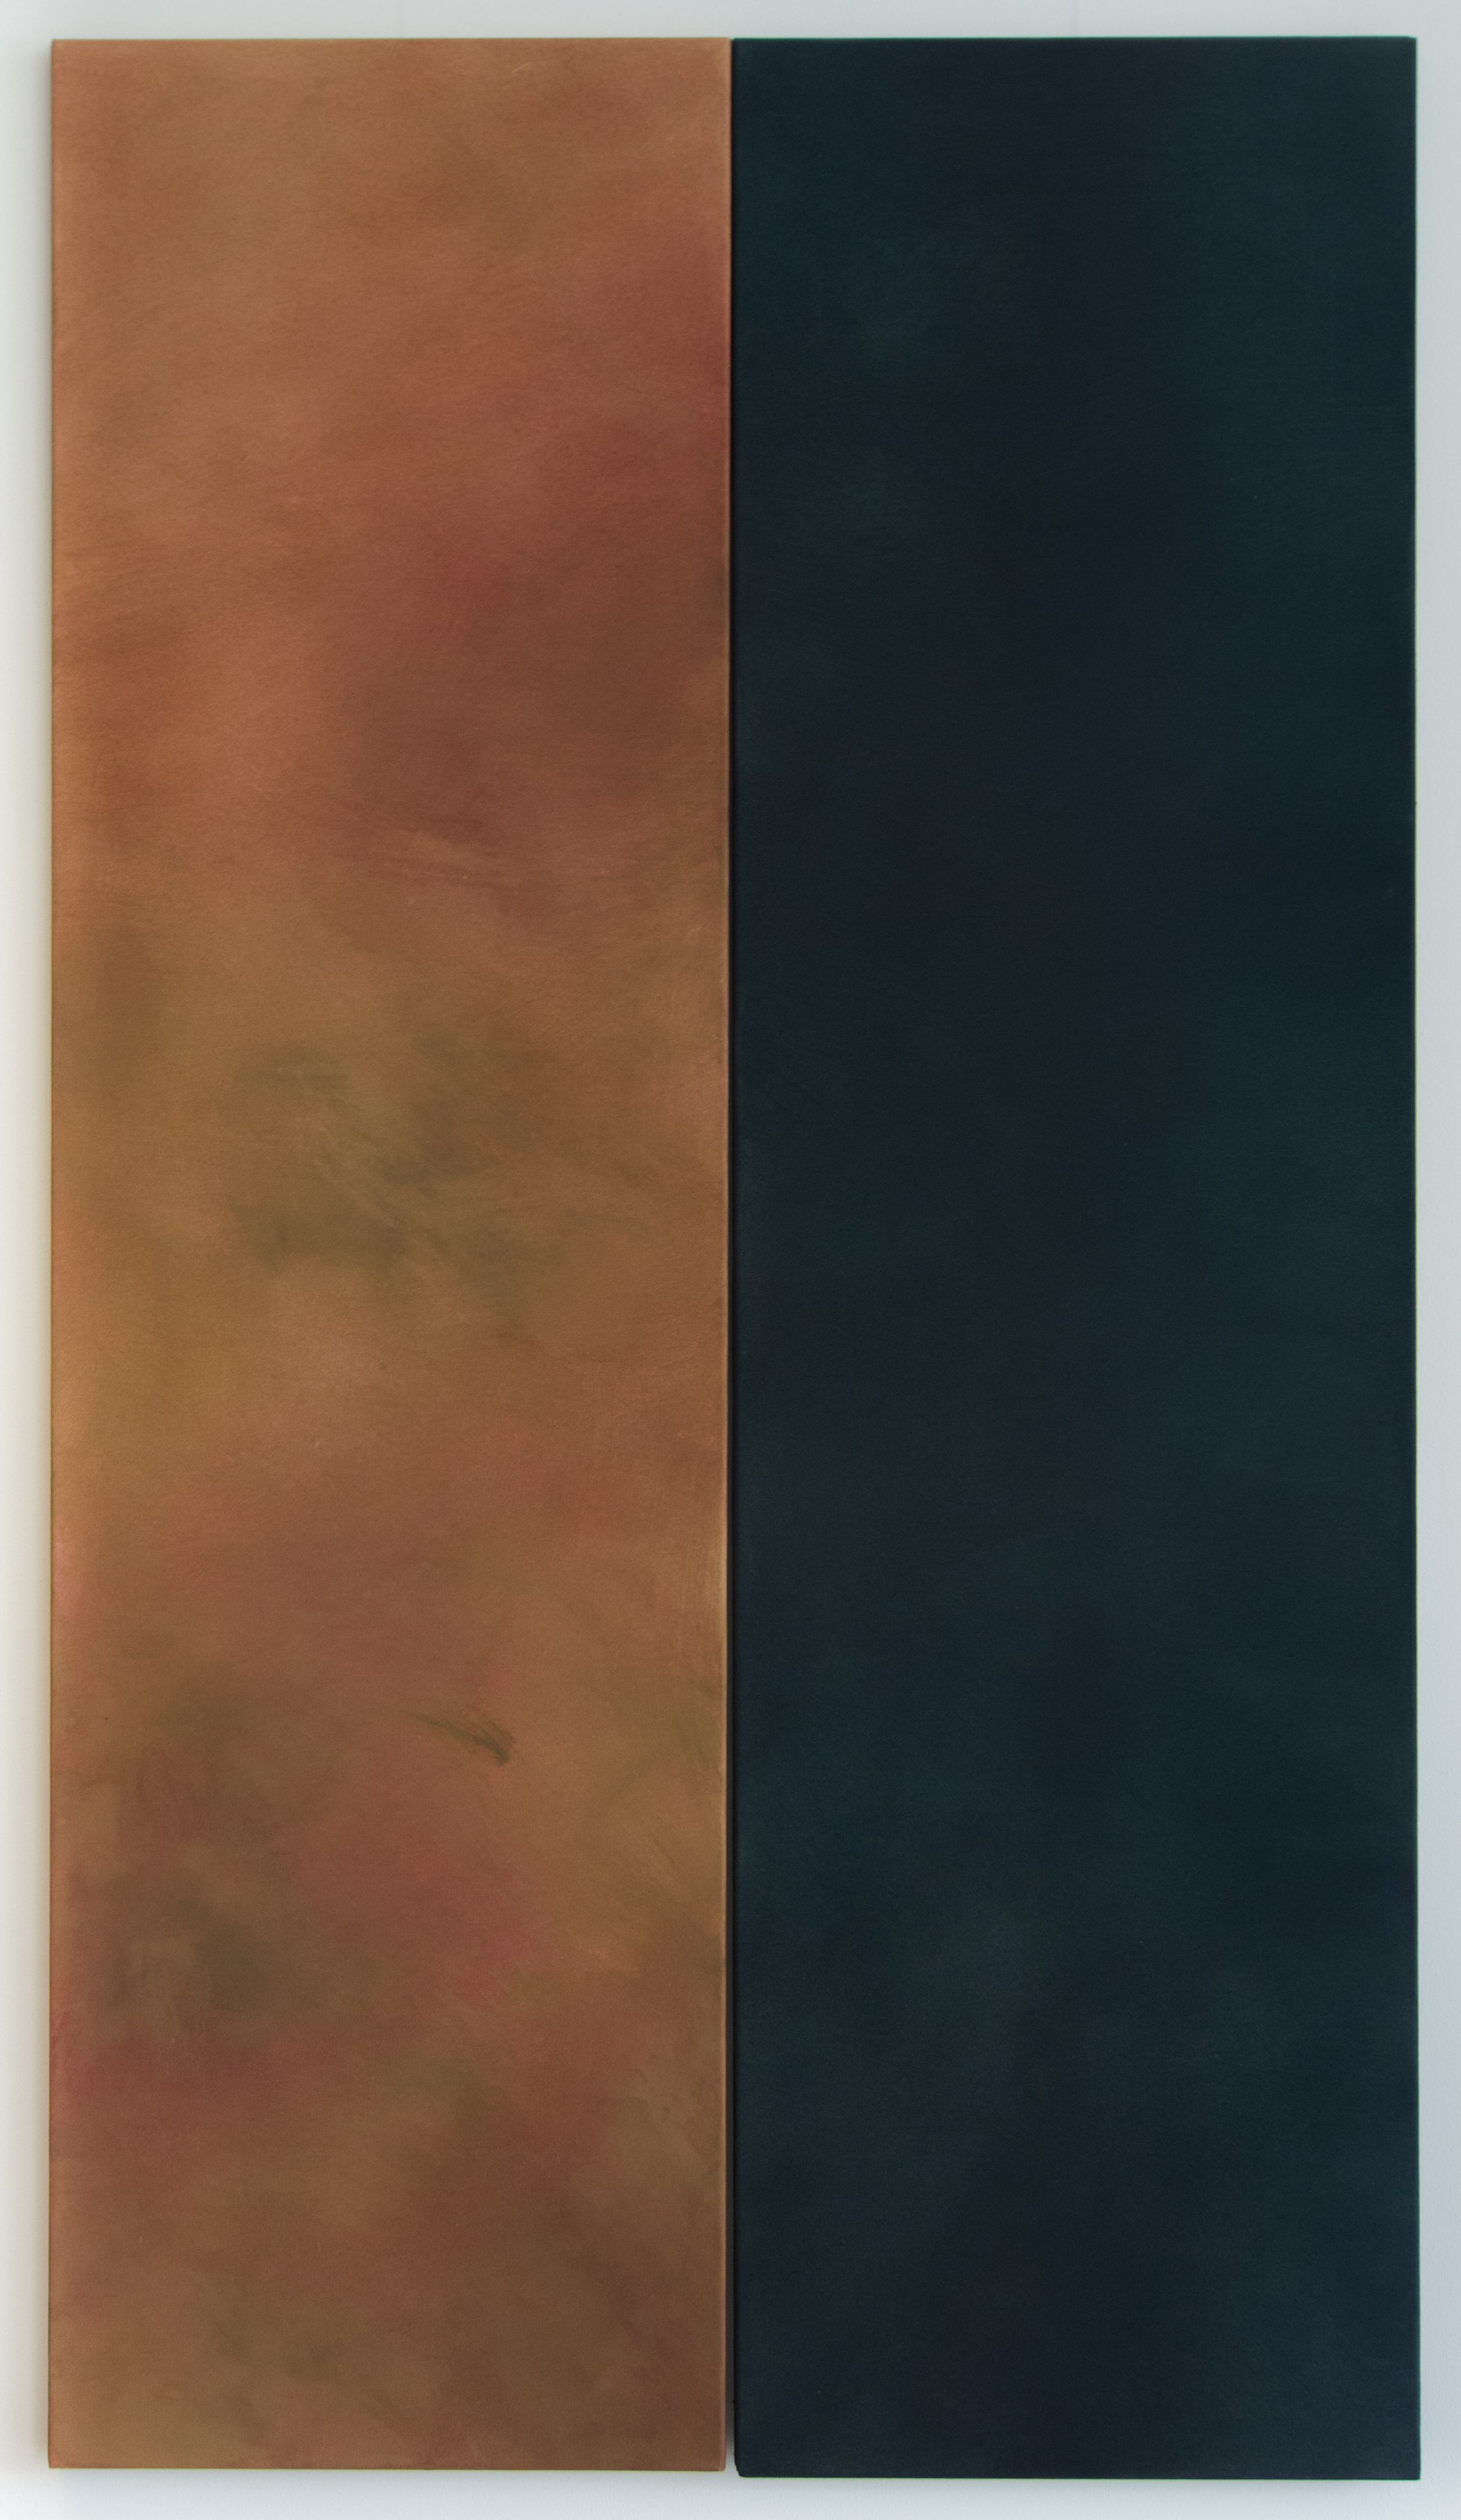 <p><strong>Colours of Scotland 6         1700 Euro</strong><br />Punic wax on canvas, 2x    50x180 cm</p>